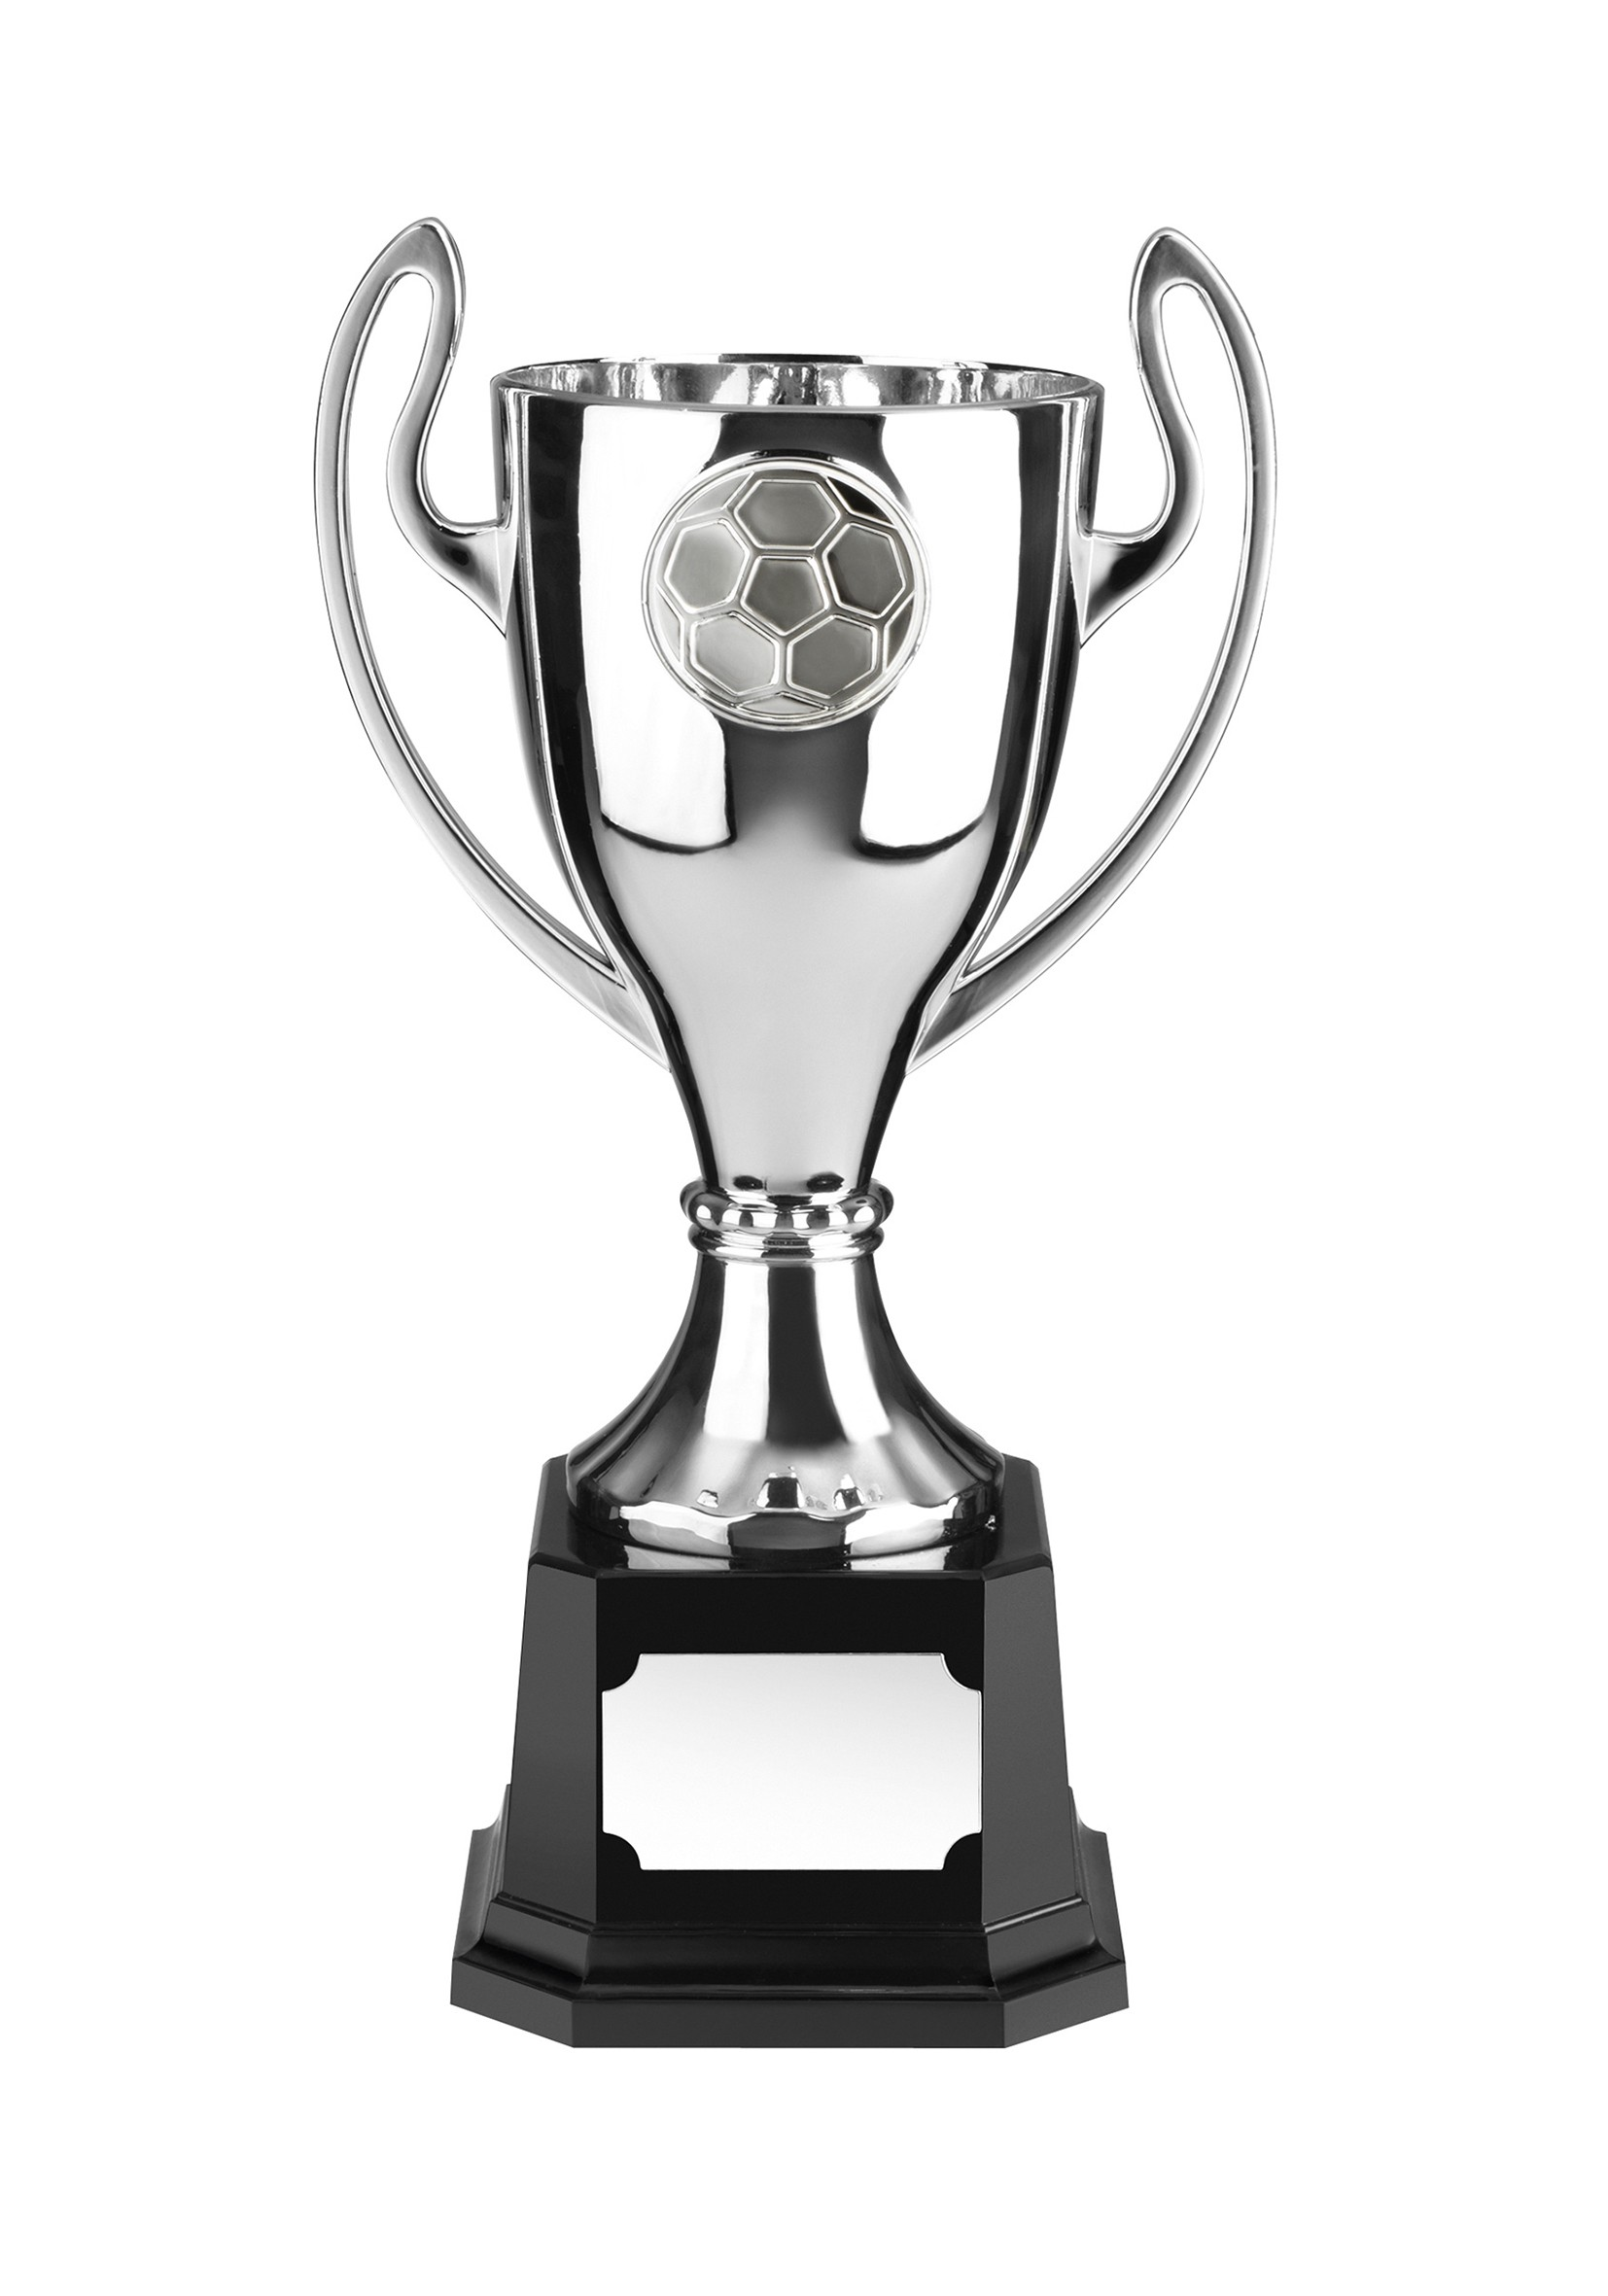 MB 17.5cm Silver Fin F/Ball Cup & Base